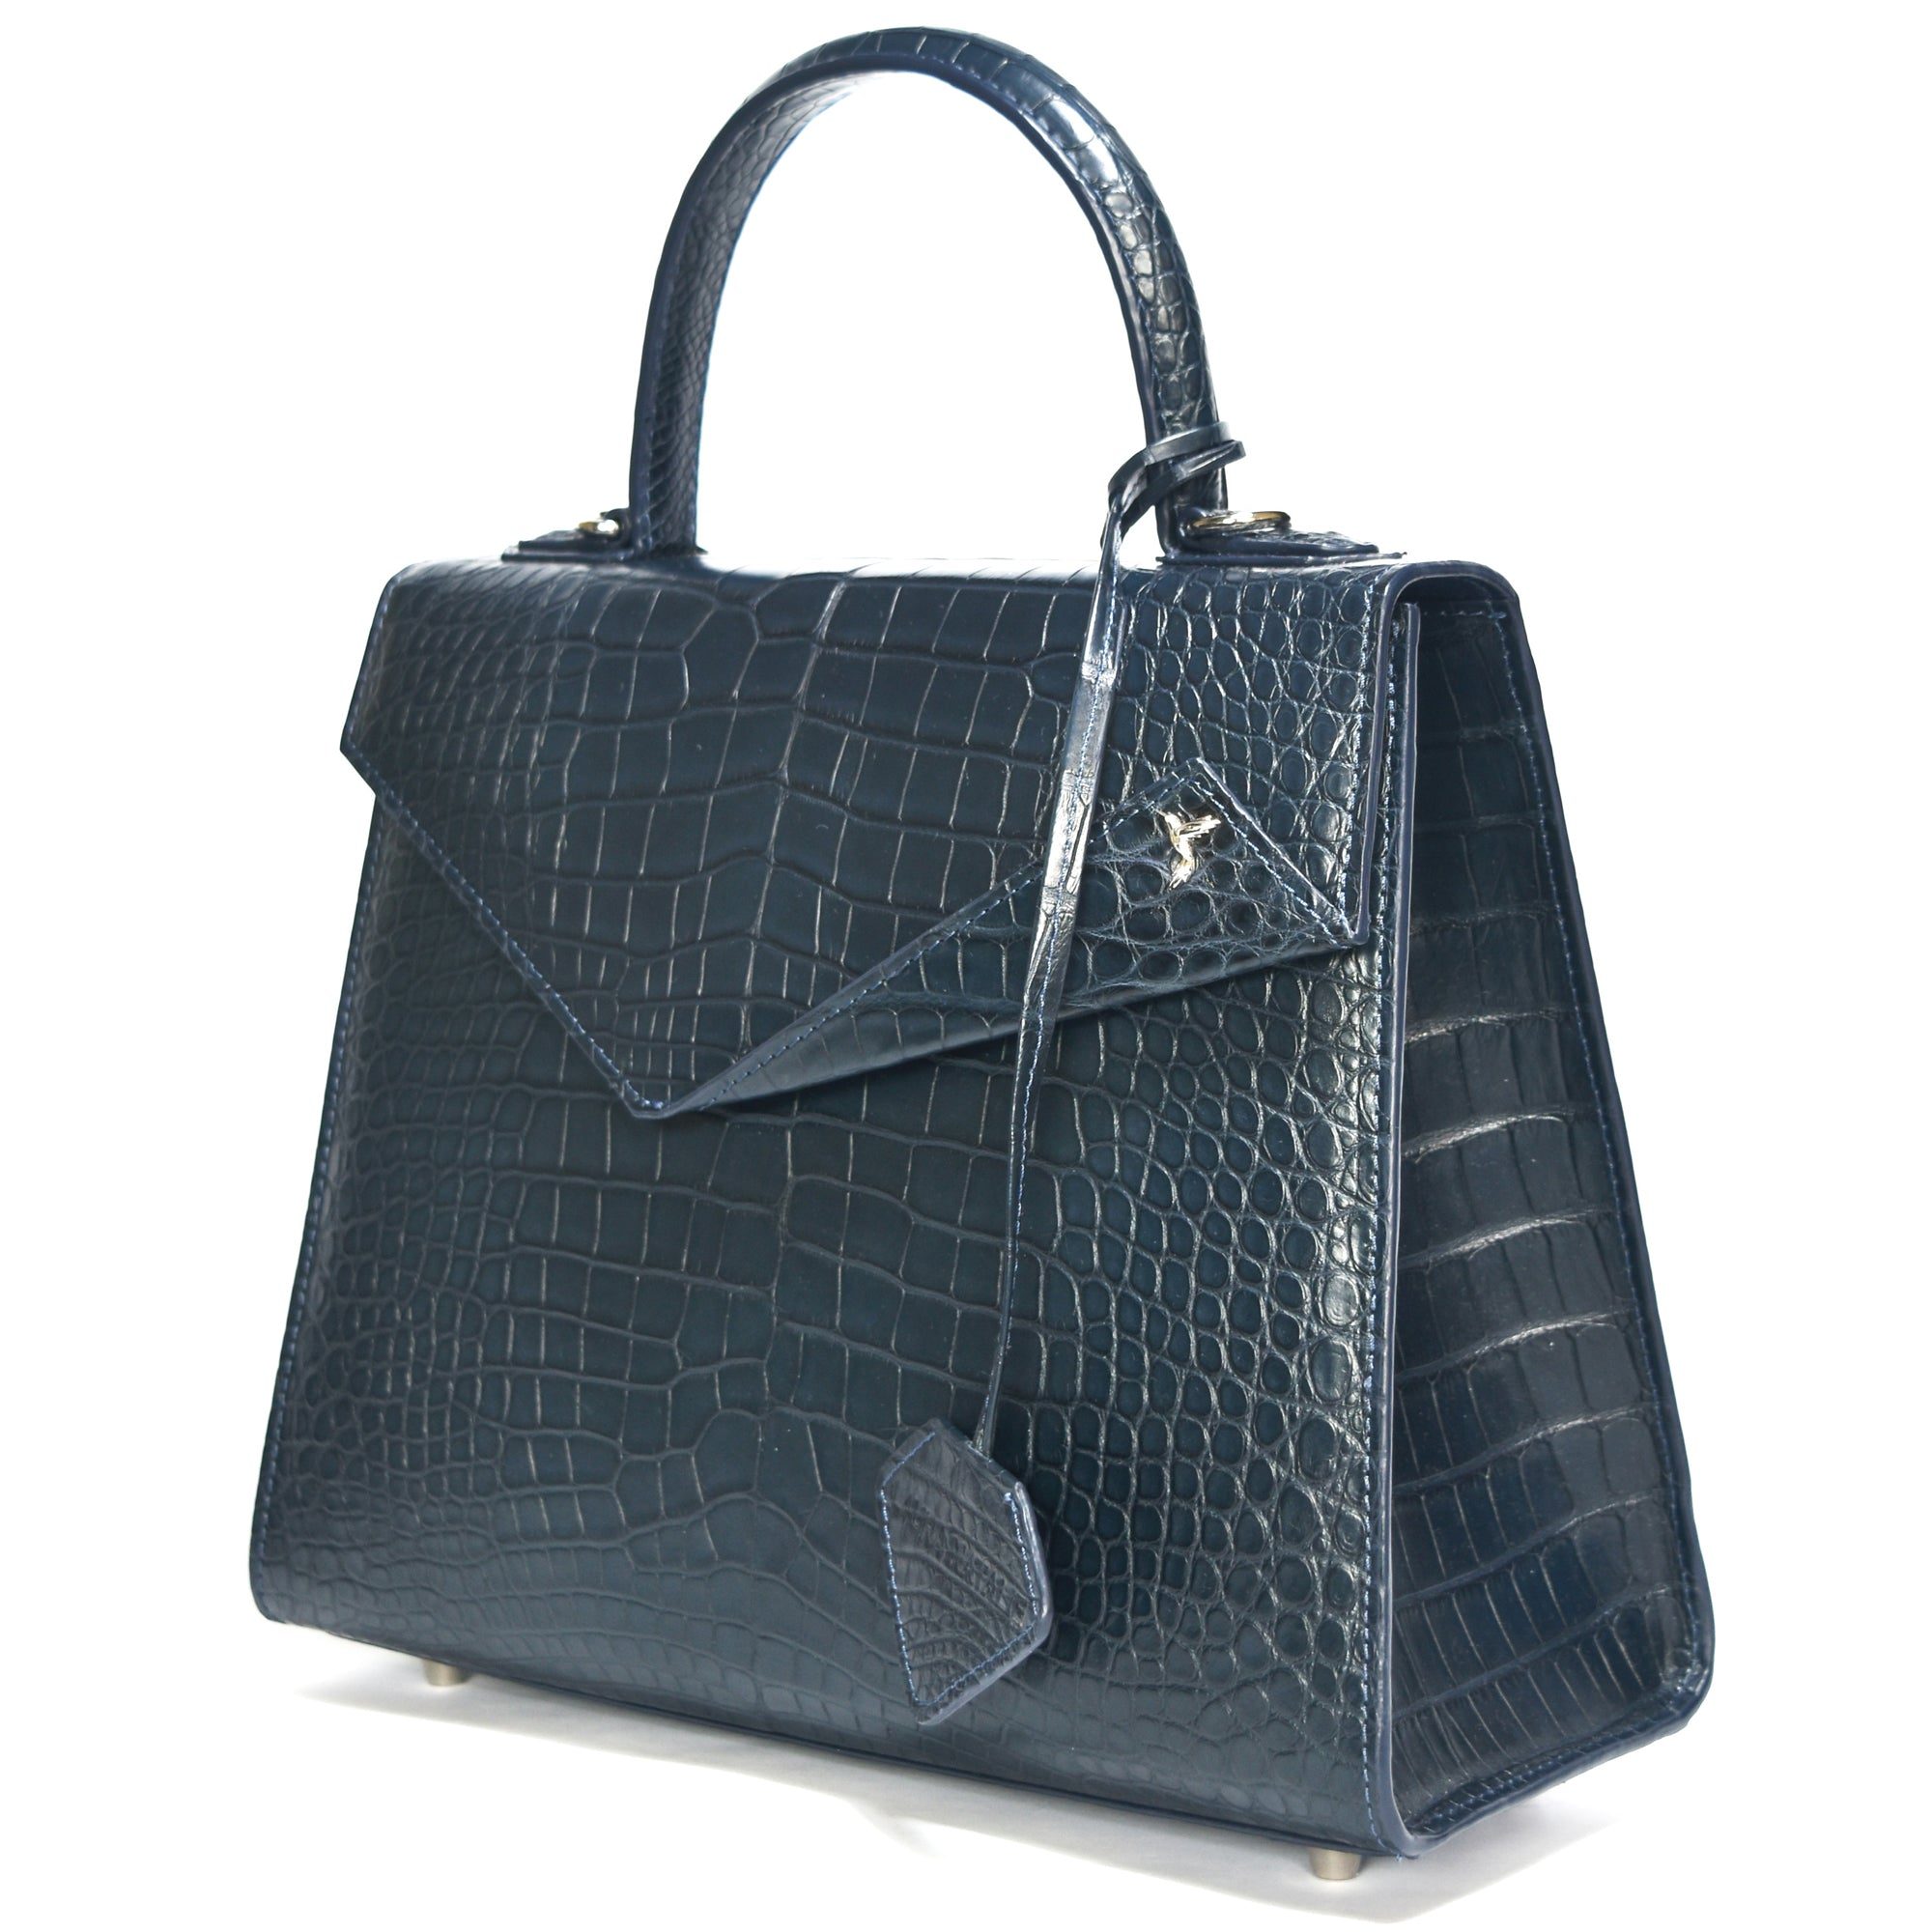 Kate Ocean Blue 26 croco leather